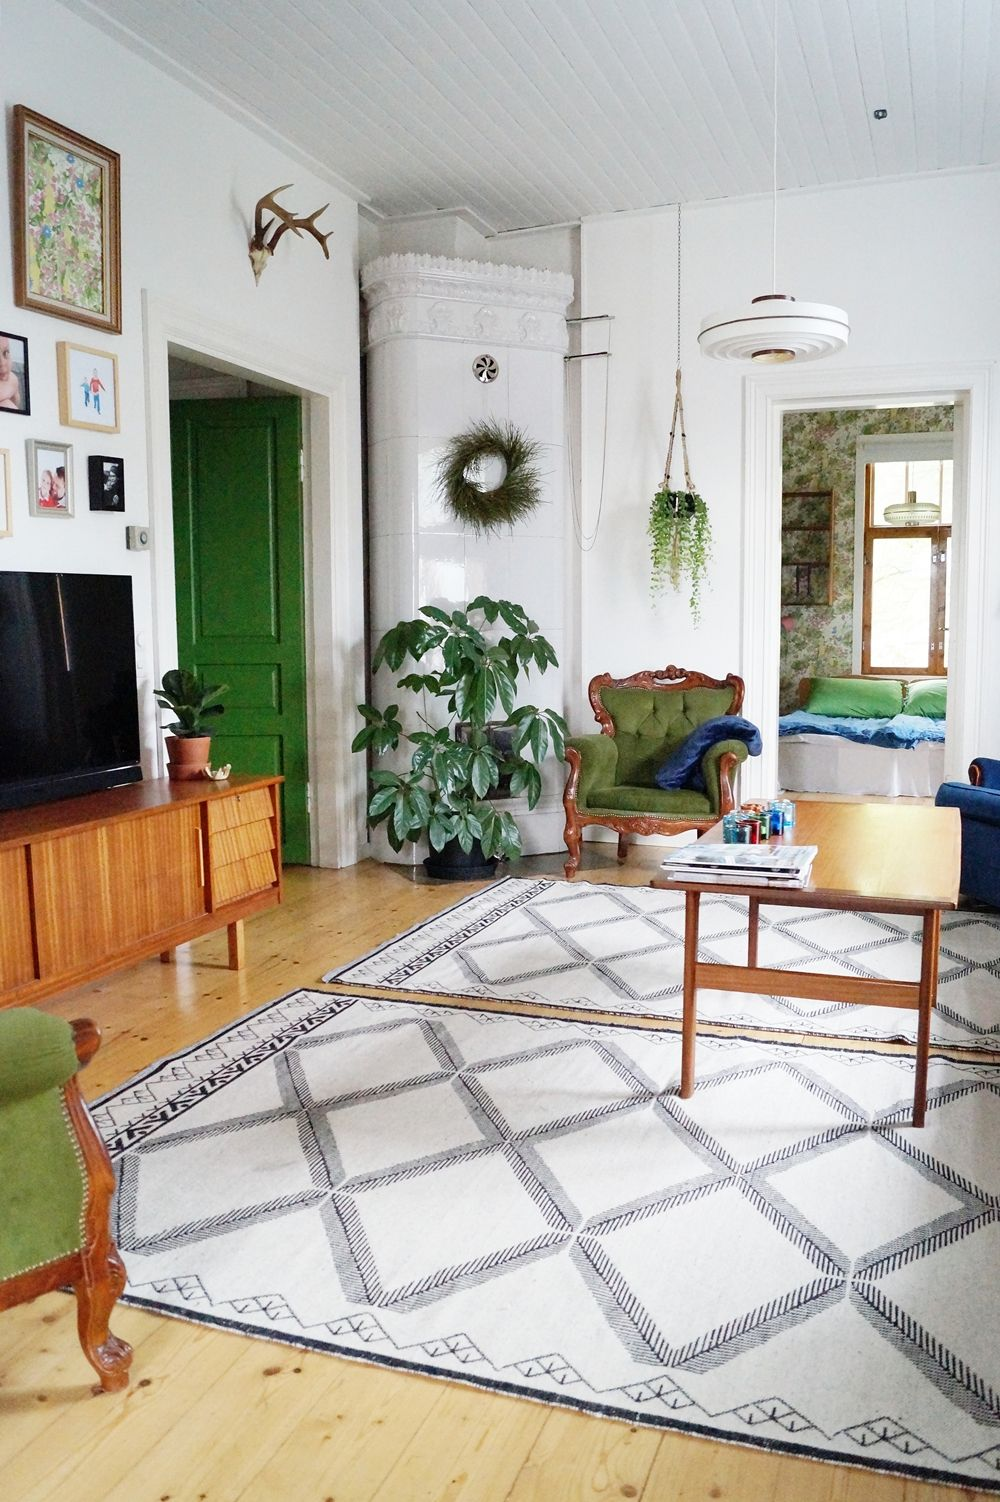 living room, old house, old furnitures, green rococo chairs ...